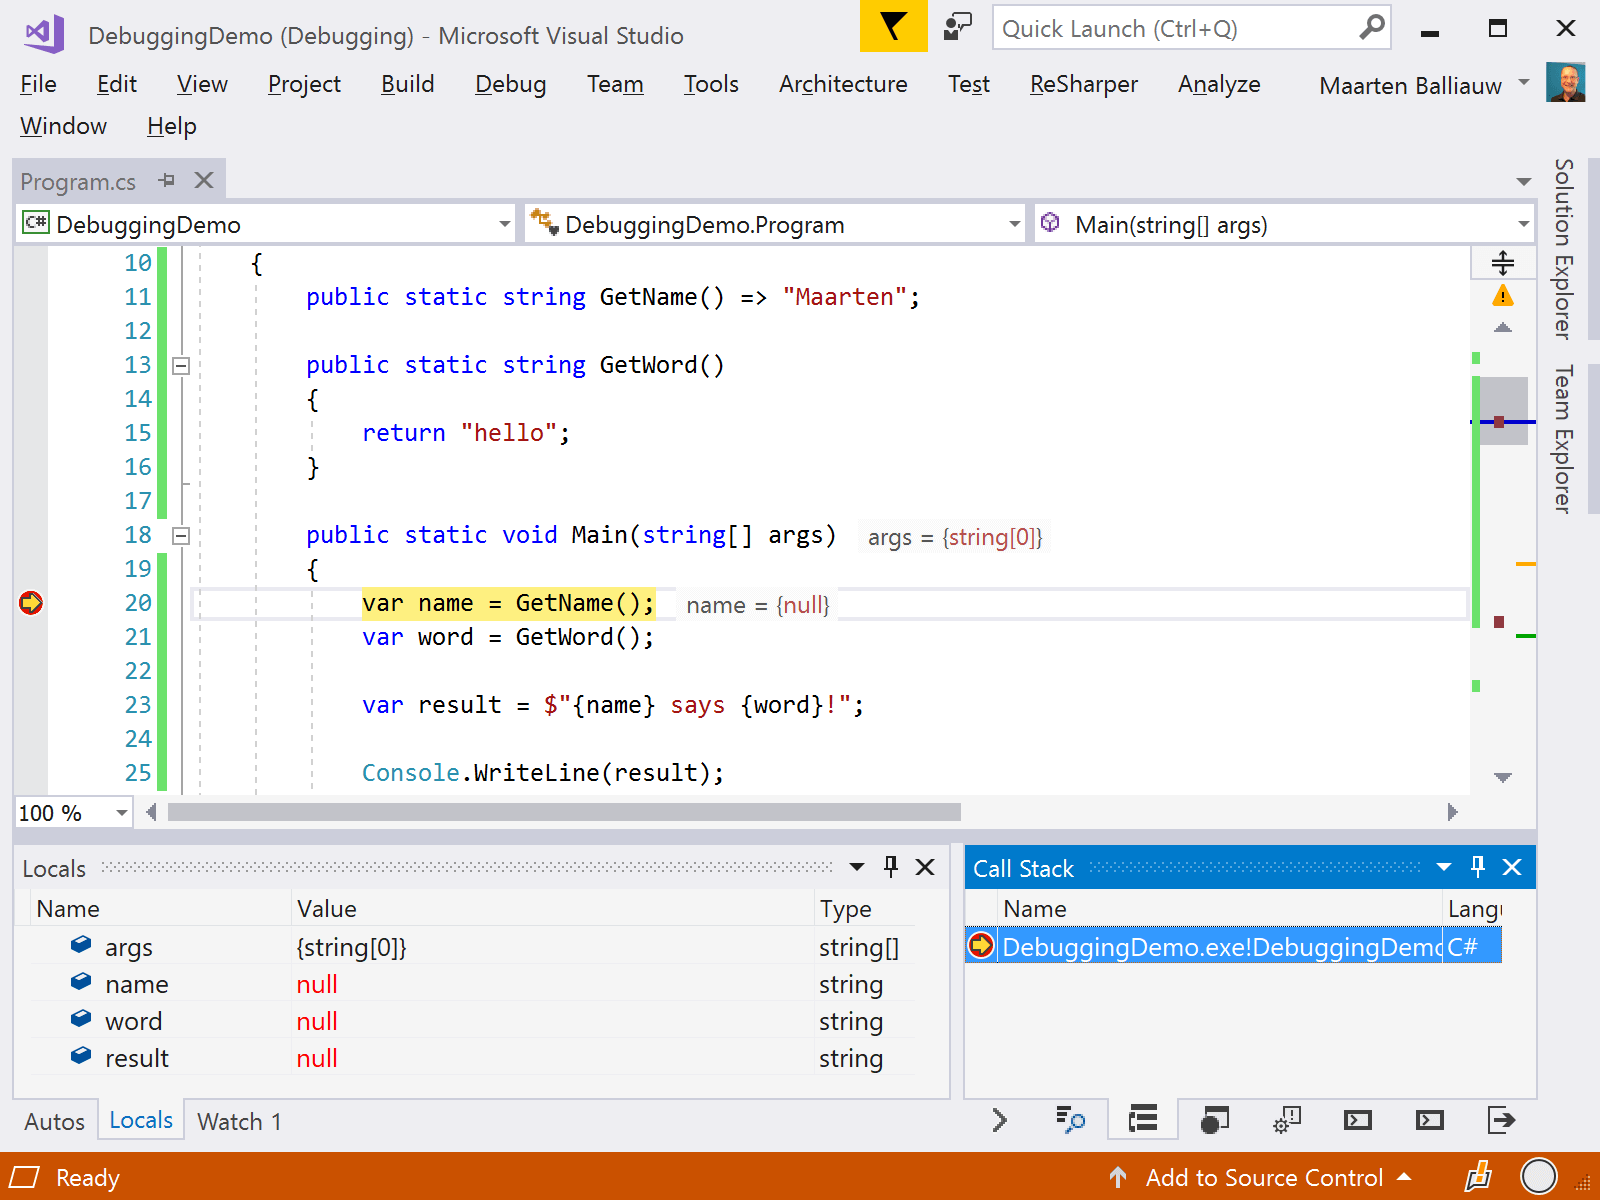 Display variables from debugger in the editor